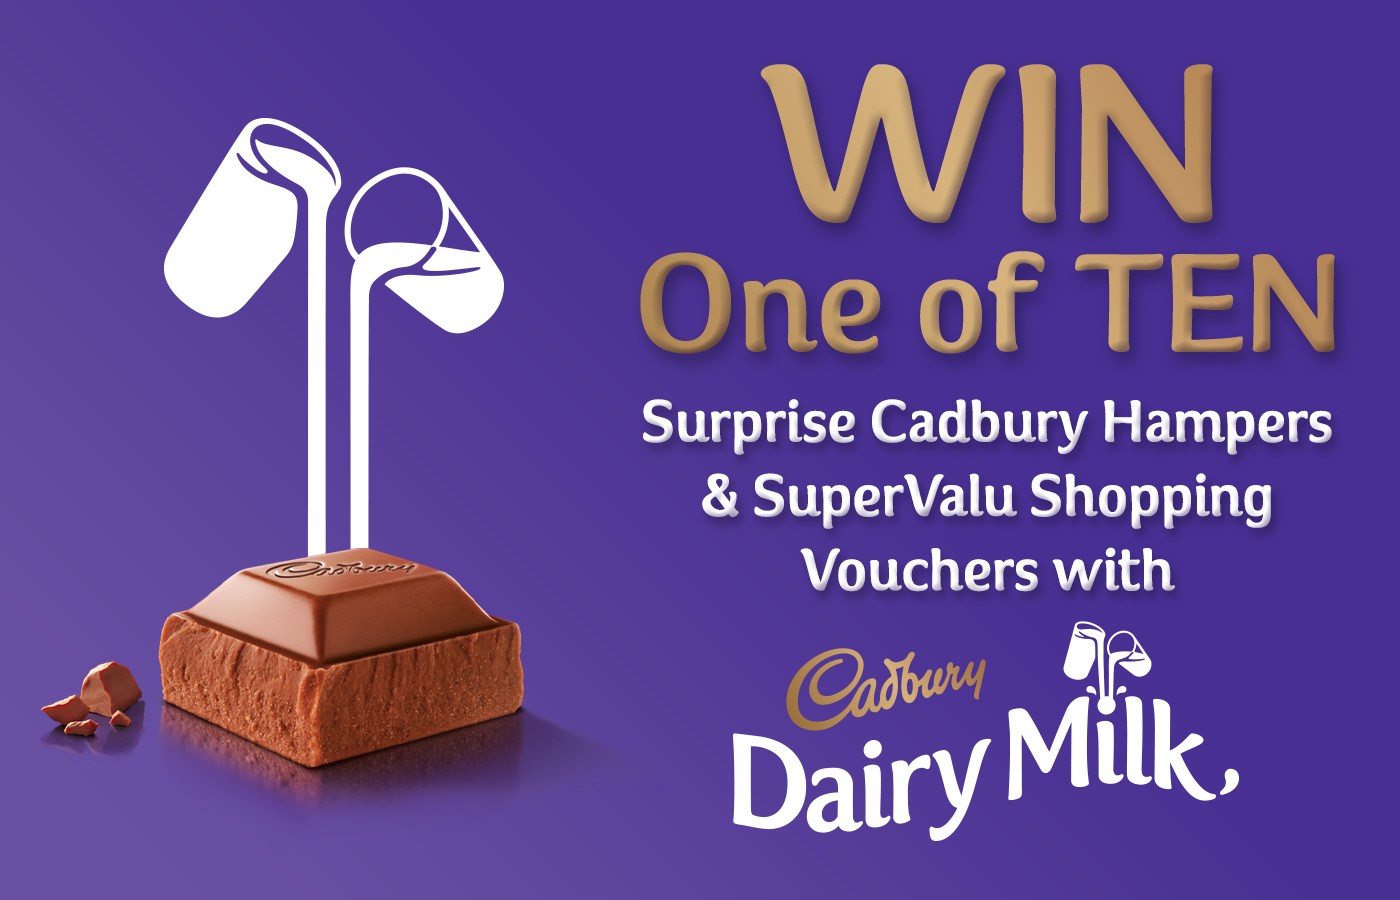 Win Surprise Cadbury Hampers